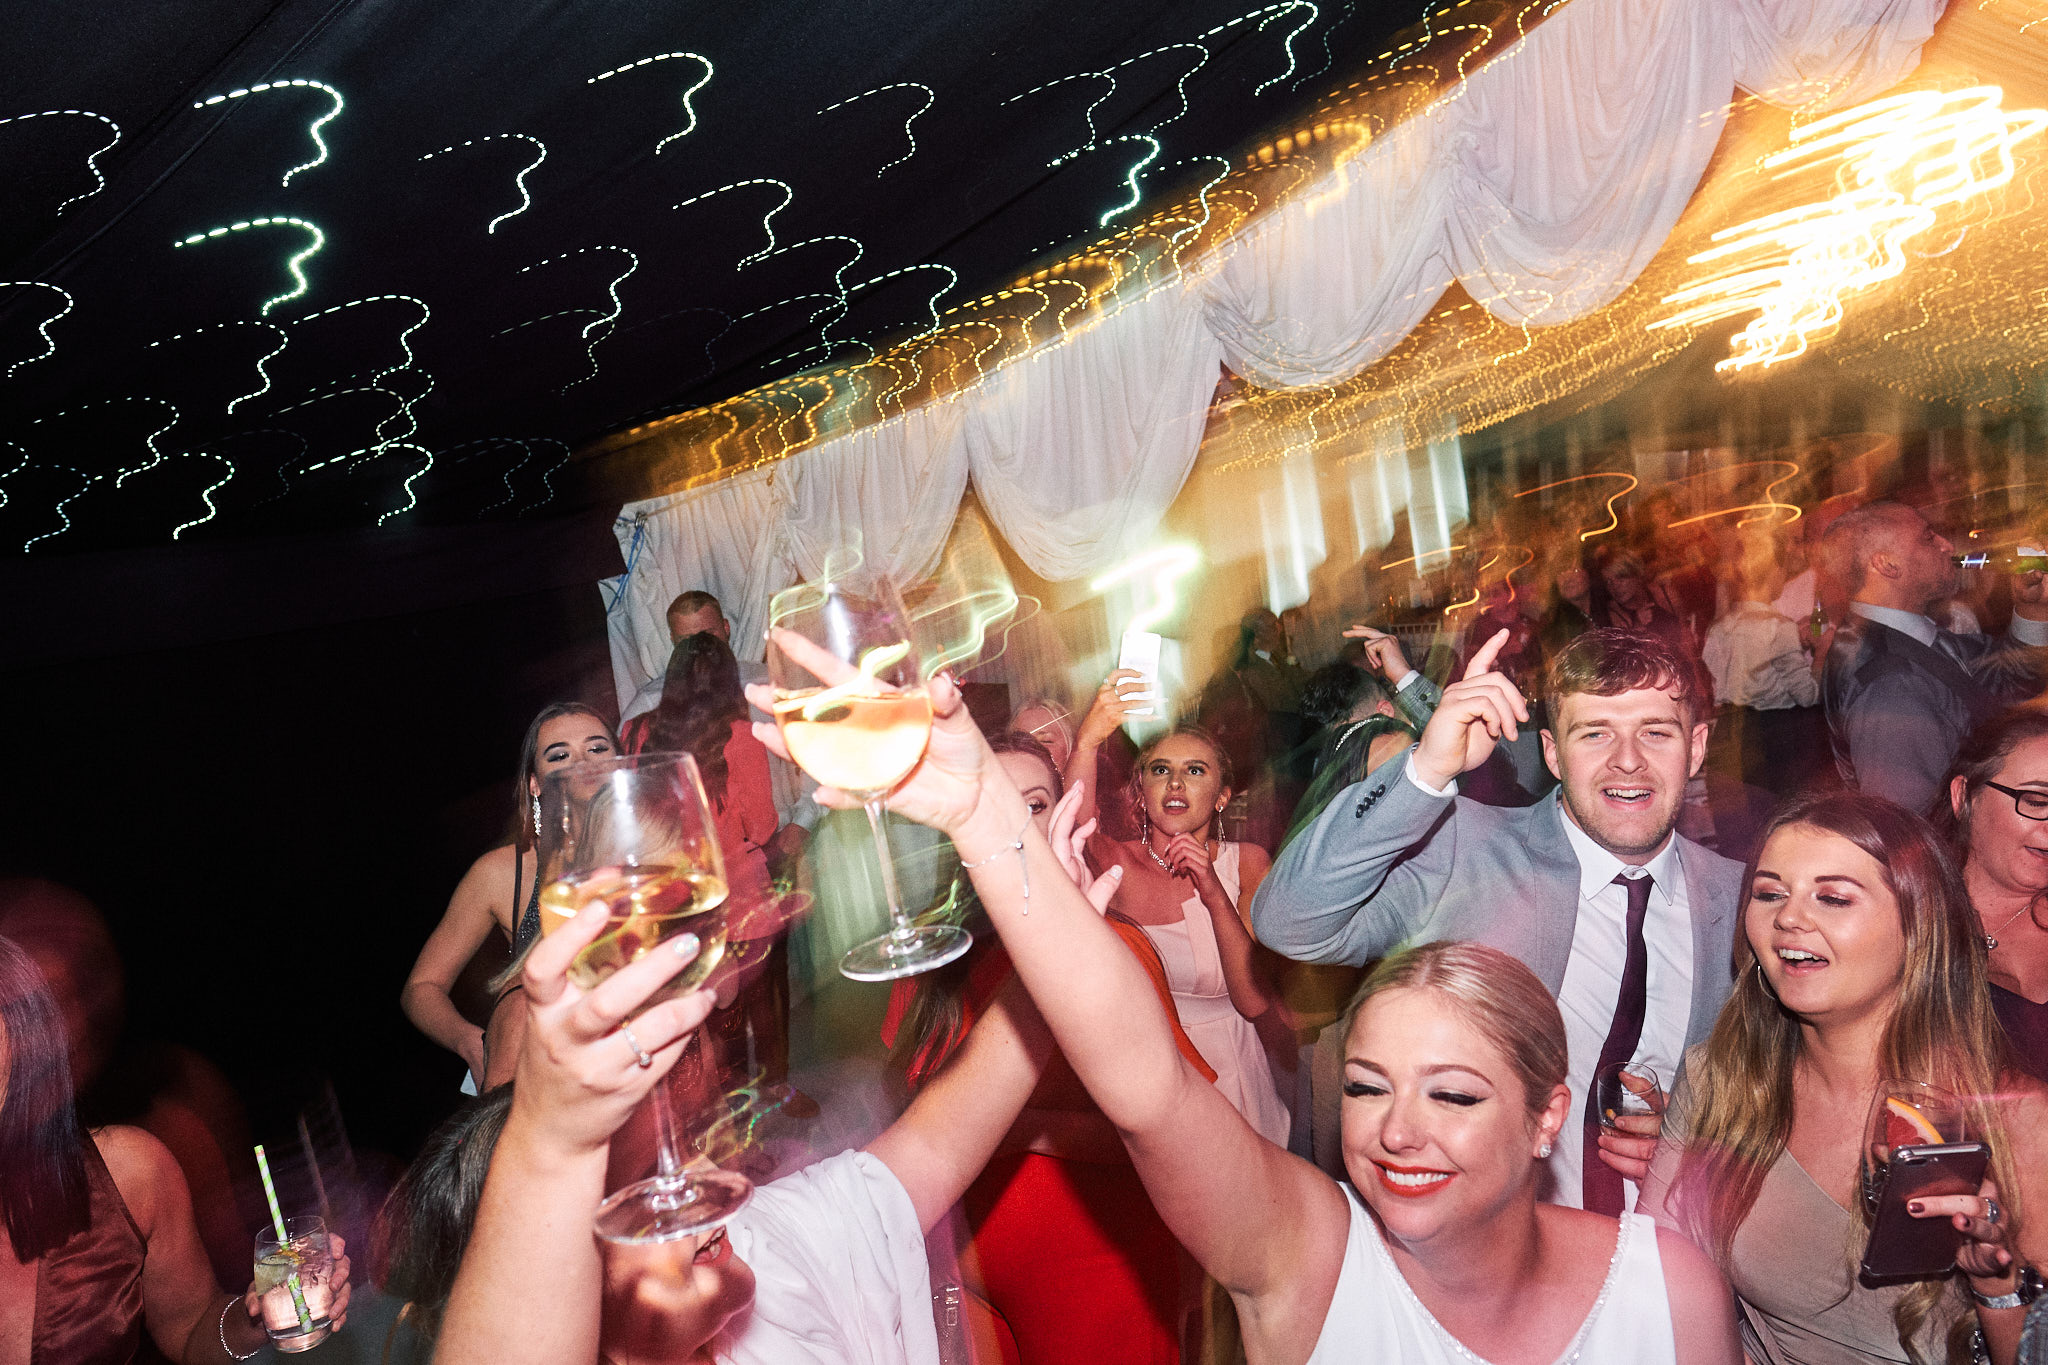 Wedding guests enjoy the evening dancing whilst light streaks across the image